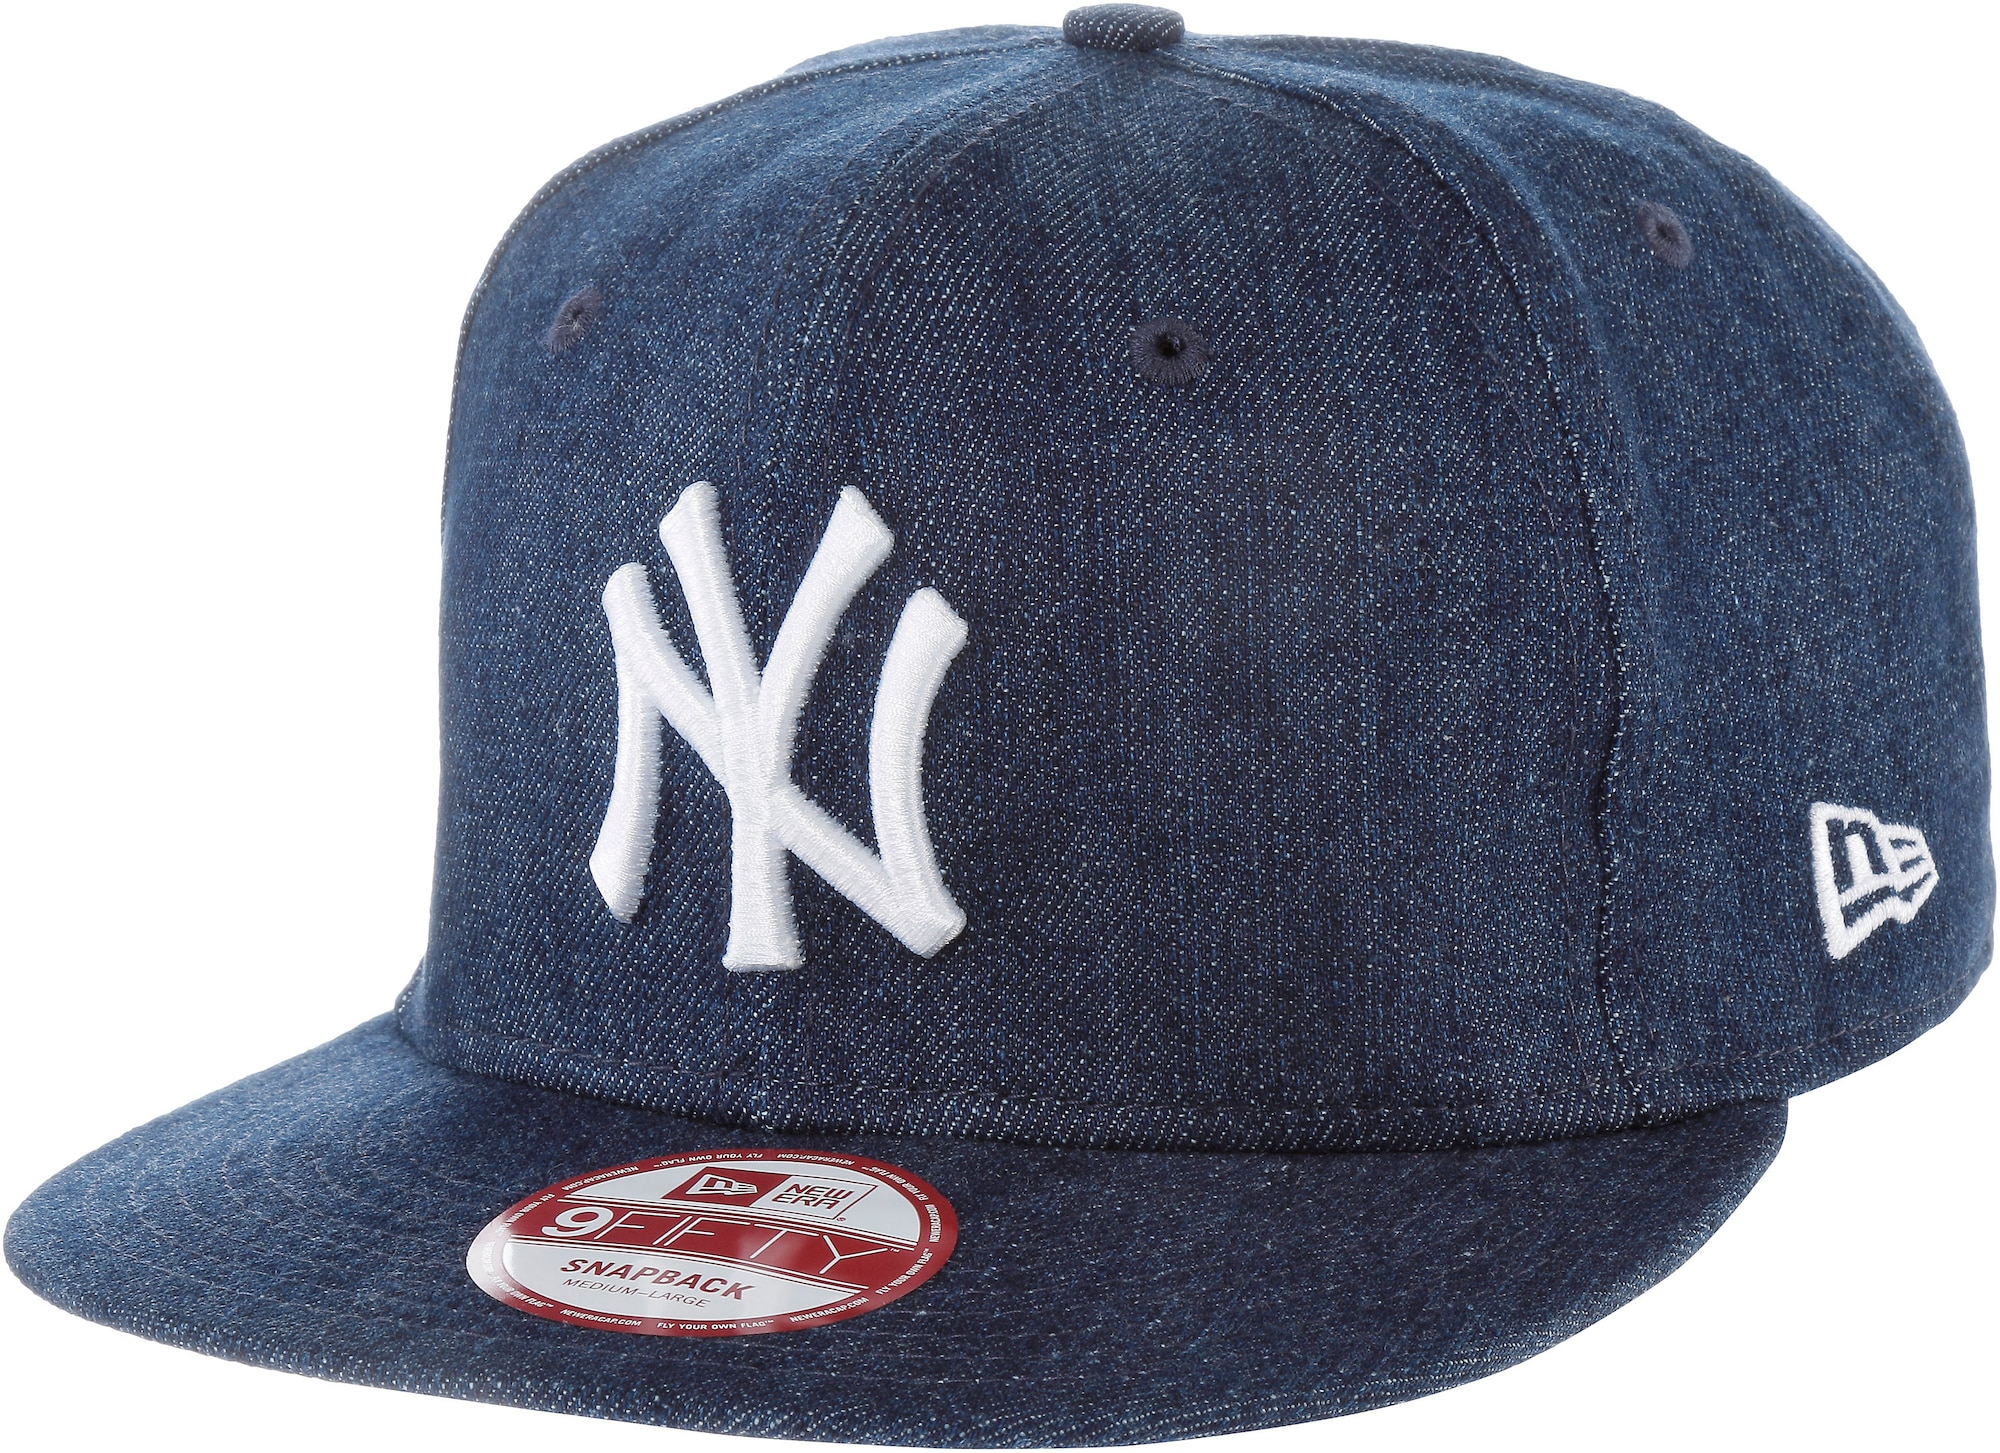 NEW ERA Kšiltovka 9FIFTY League Essential New York Yankees modrá džínovina \New Era